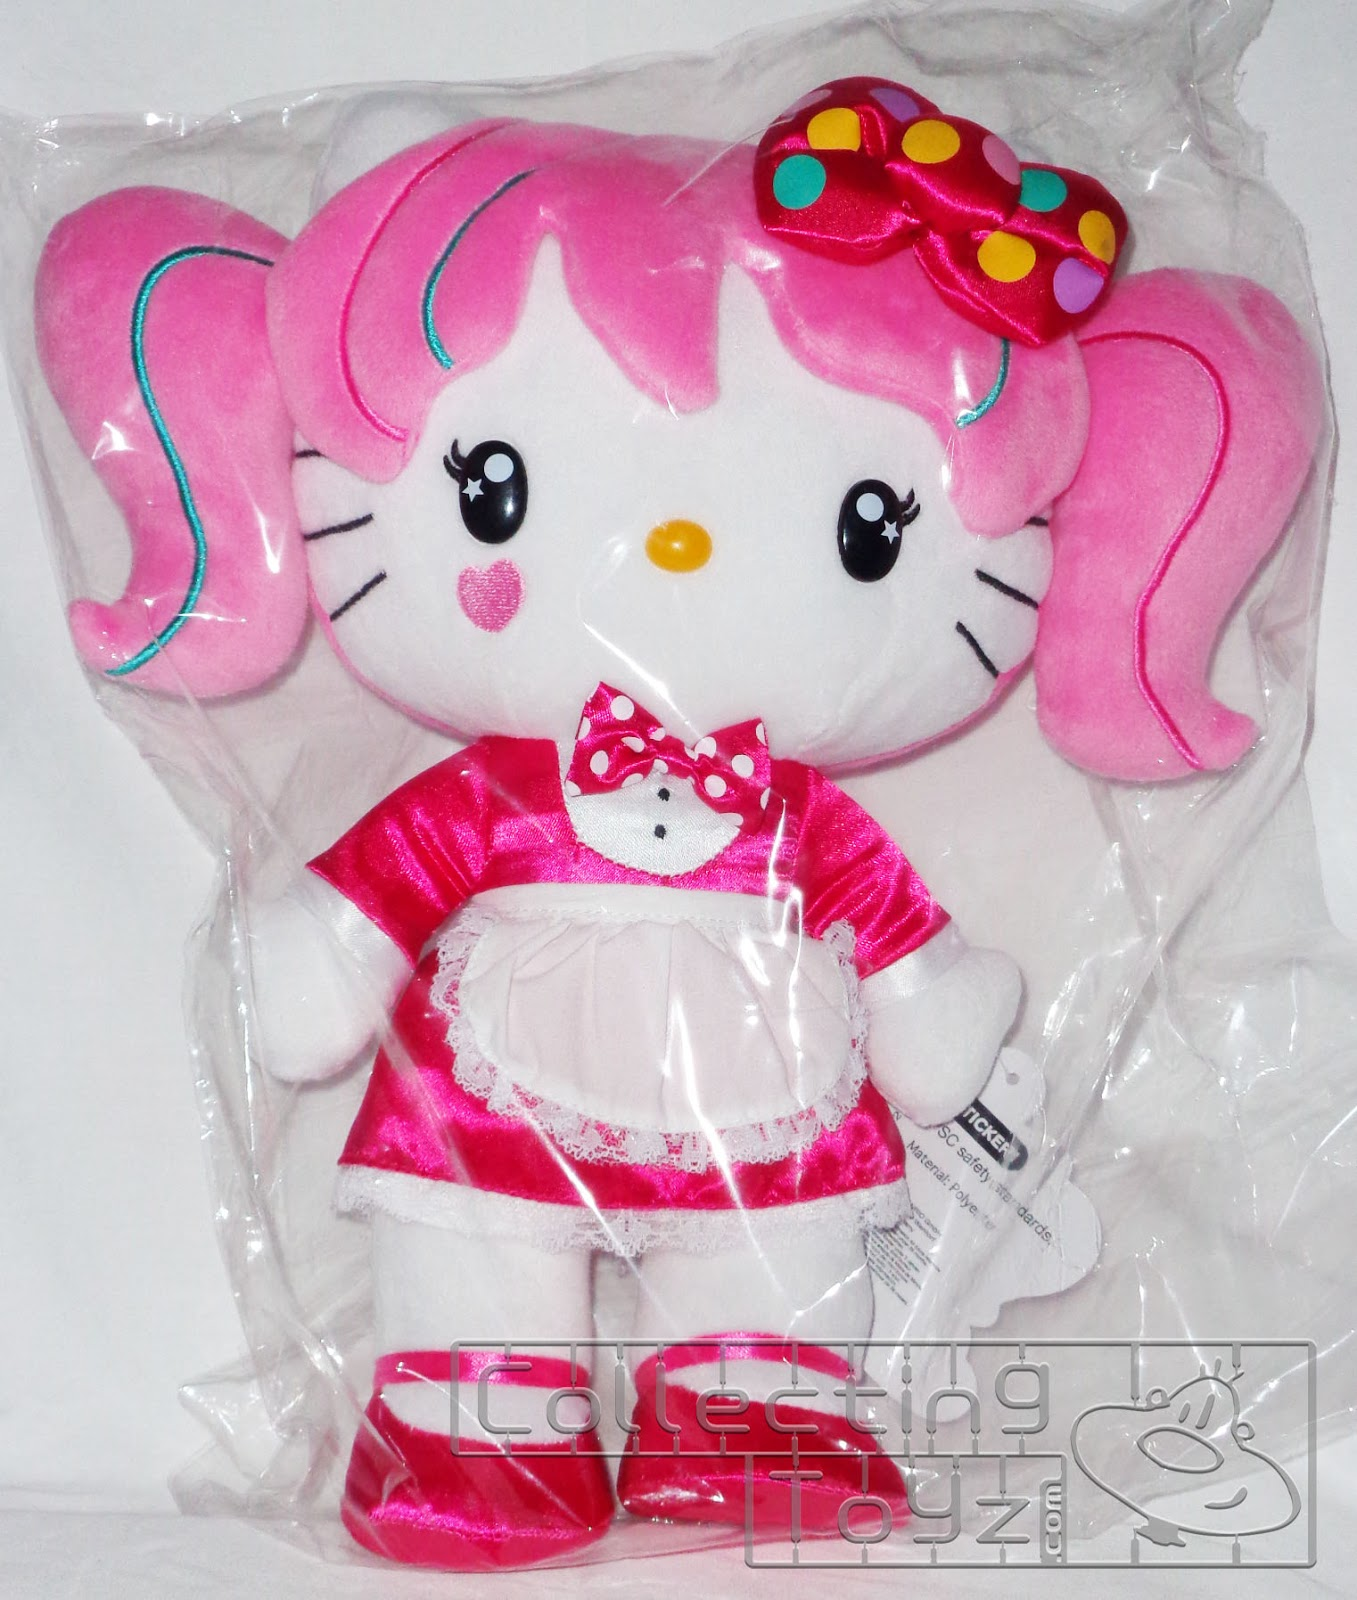 d6dea3cc54 Collecting Toyz  SDCC 2013 Toy Haul - Sanrio Hello Kitty ...